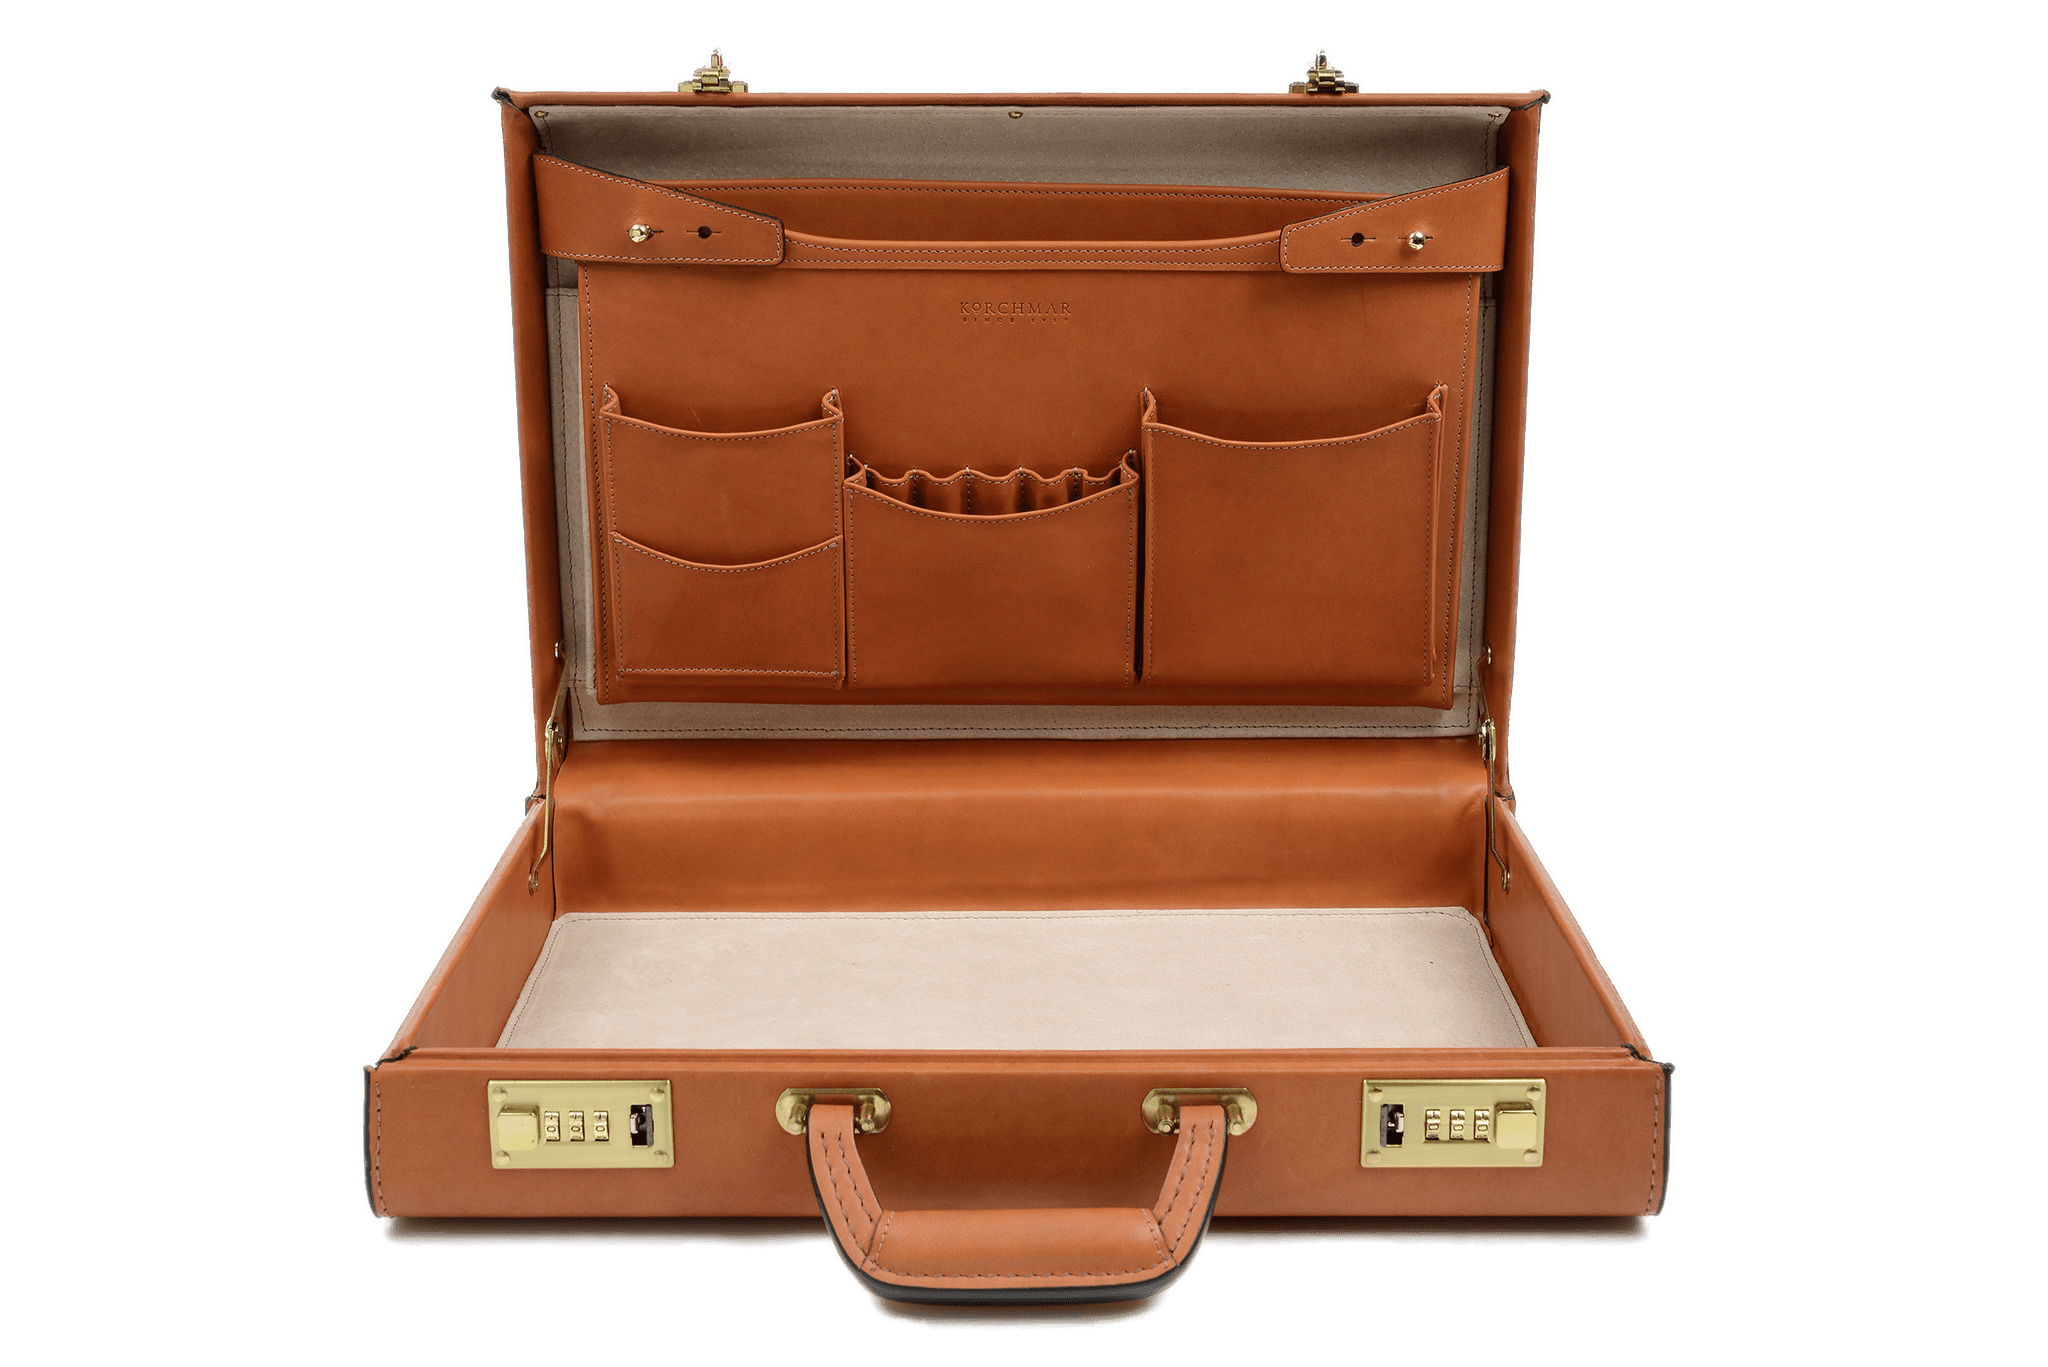 Open leather briefcase transparent. Luggage clipart opened suitcase